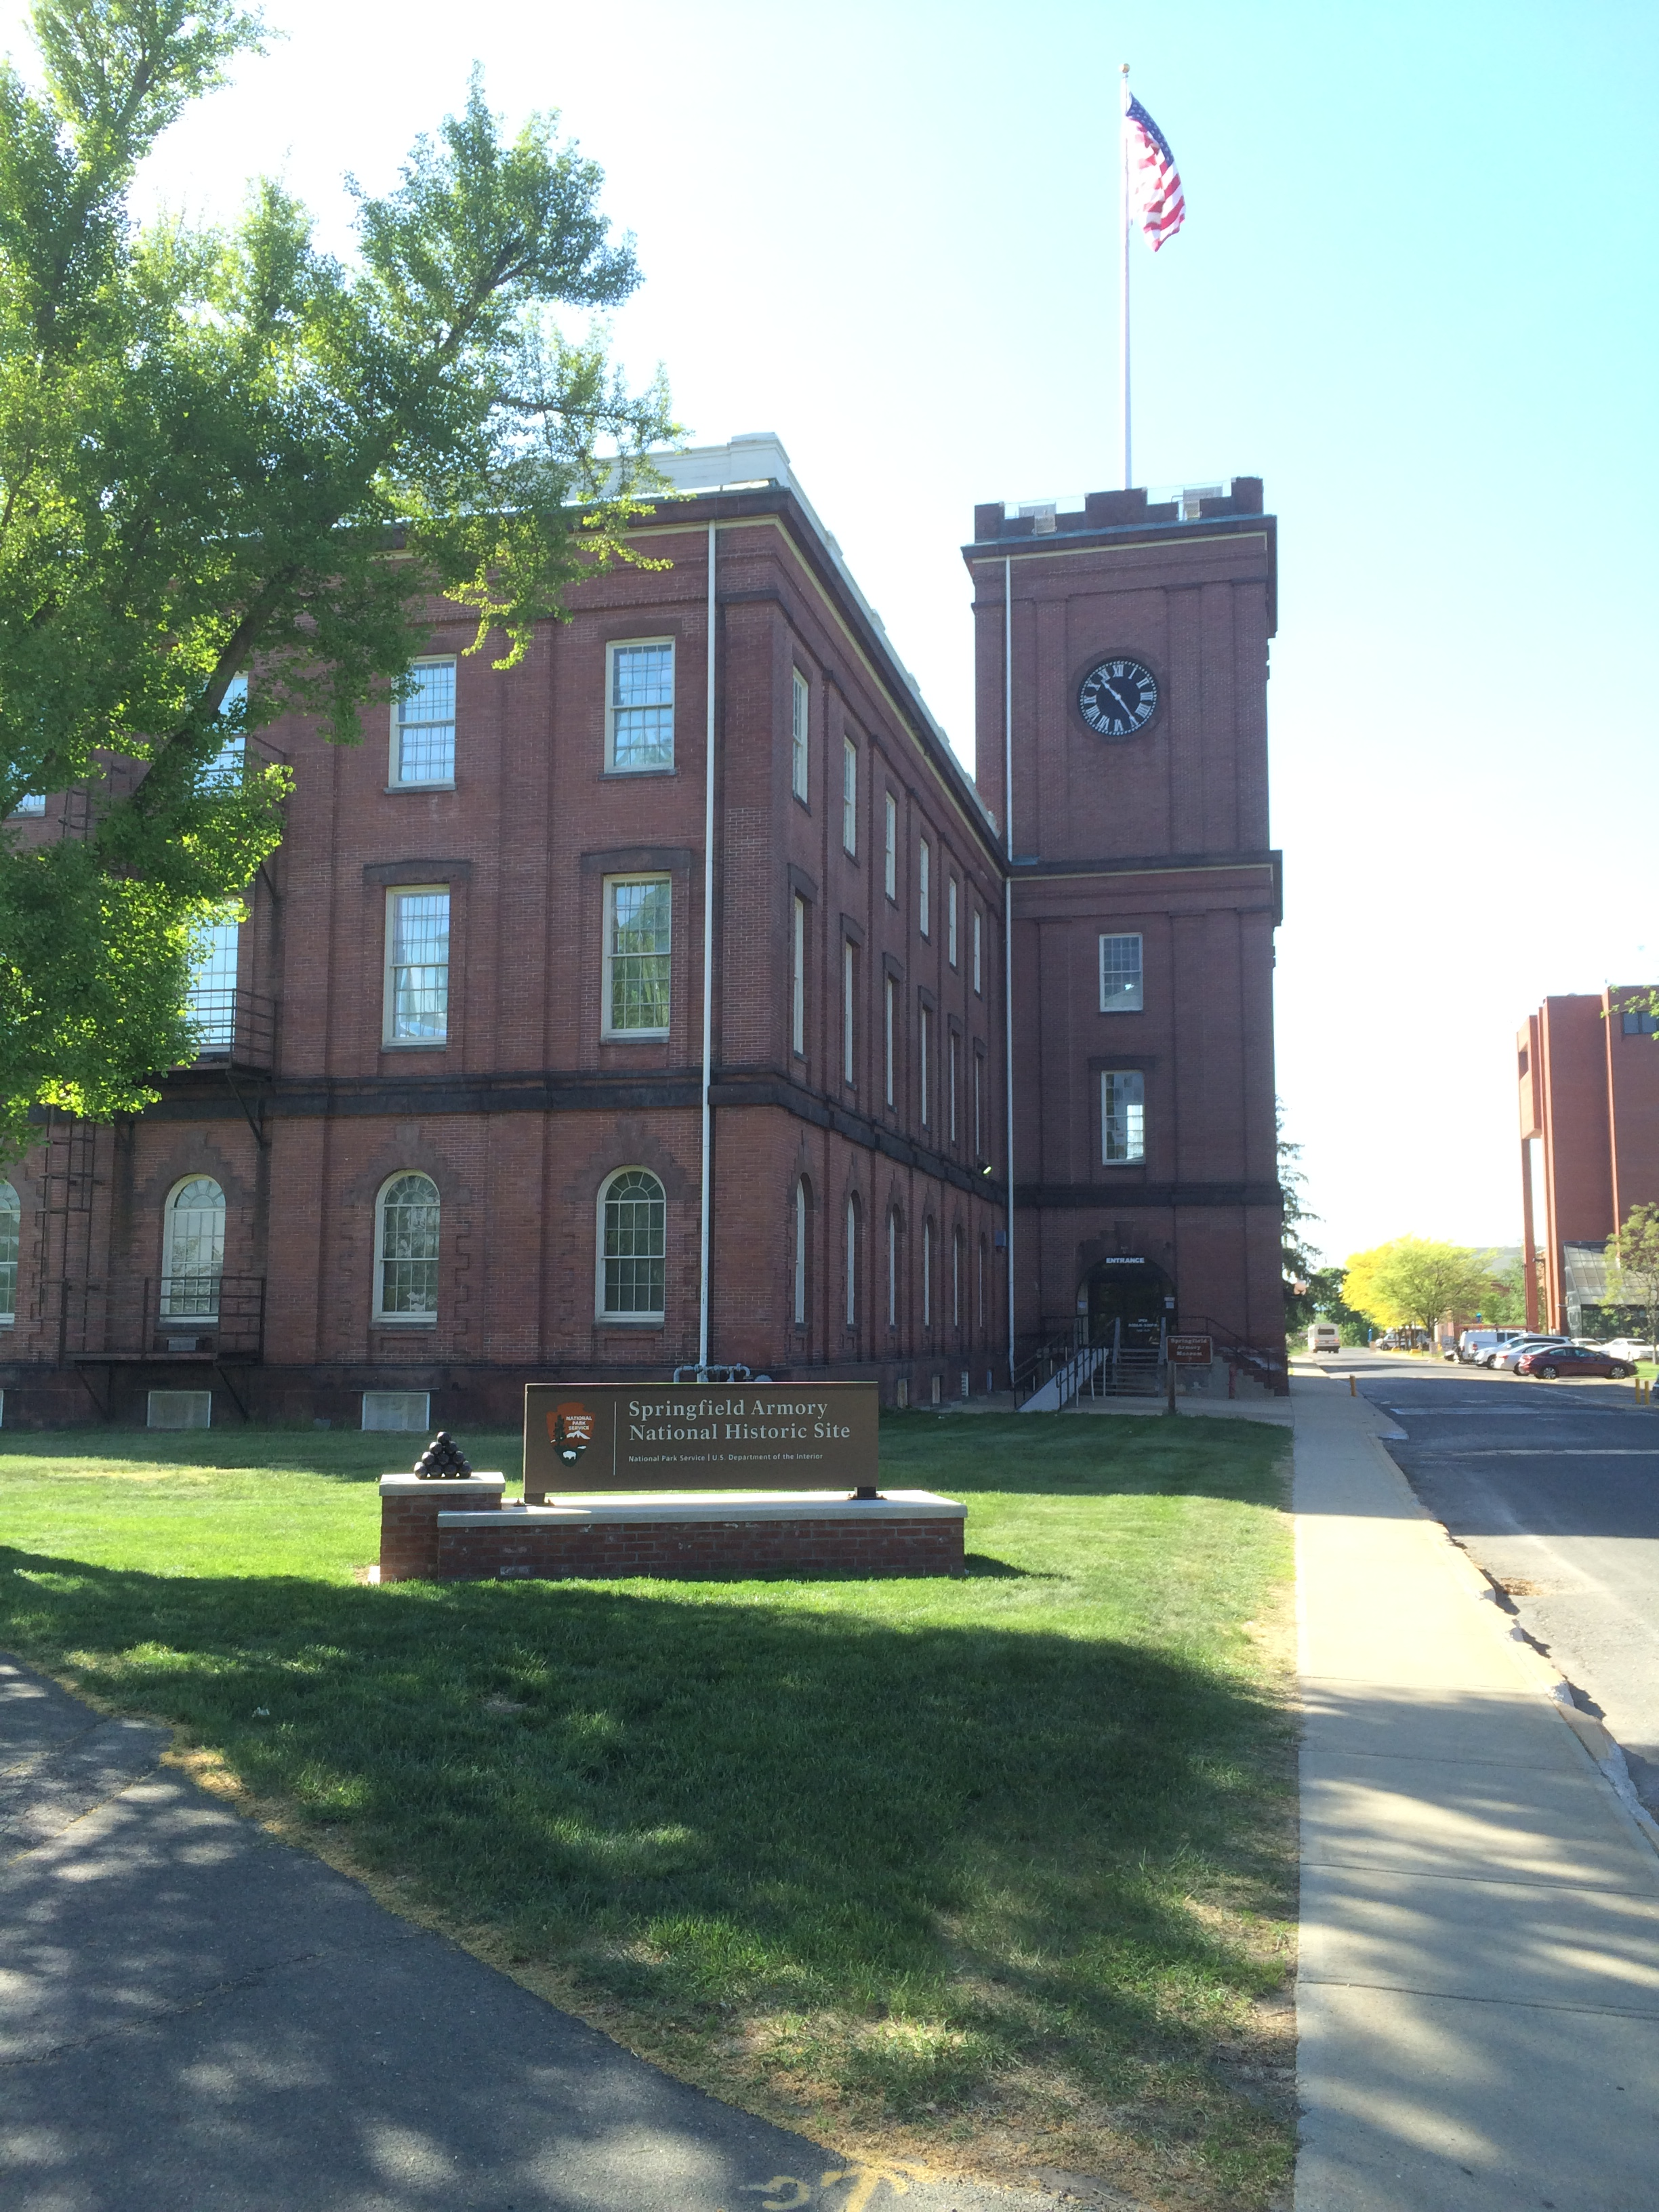 The Visitor's Center of the Springfield Armory National Historic Site, which is now part of the campus of Springfield Technical Community College. Photo by Eric Hintz.